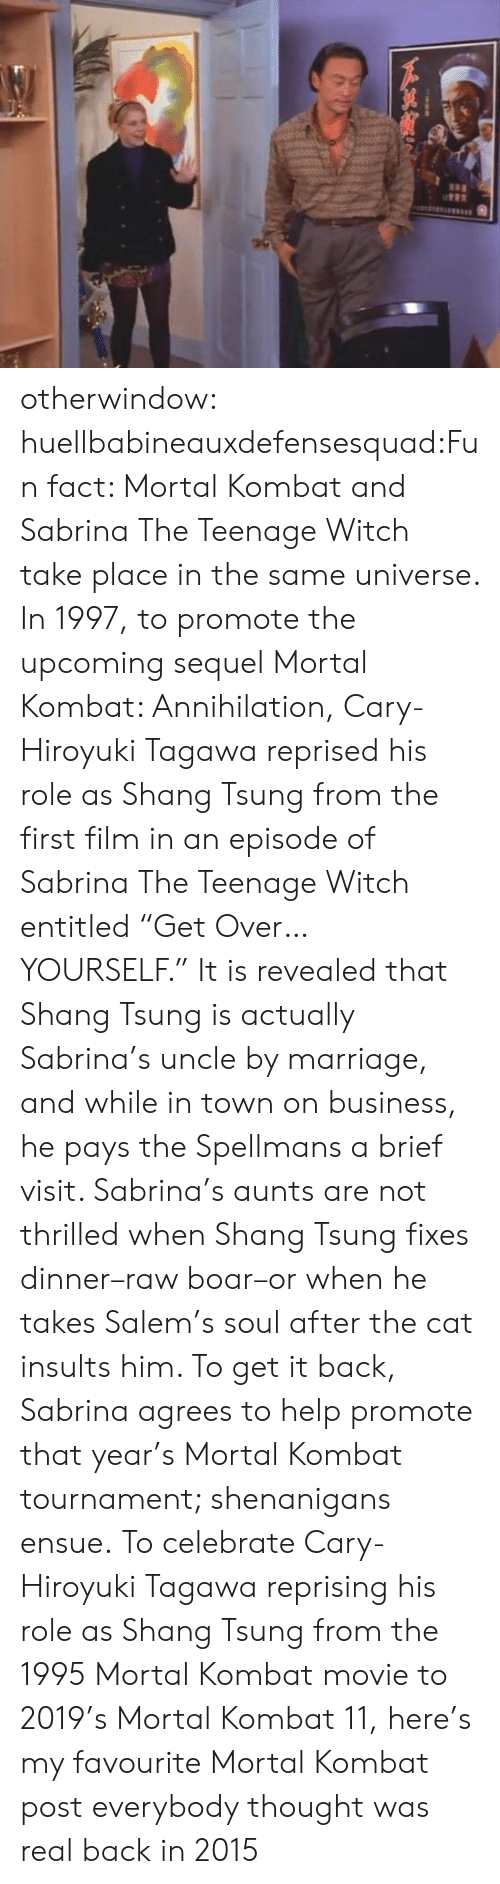 "Insults: otherwindow:  huellbabineauxdefensesquad:Fun fact: Mortal Kombat and Sabrina The Teenage Witch take place in the same universe. In 1997, to promote the upcoming sequel Mortal Kombat: Annihilation, Cary-Hiroyuki Tagawa reprised his role as Shang Tsung from the first film in an episode of Sabrina The Teenage Witch entitled ""Get Over… YOURSELF."" It is revealed that Shang Tsung is actually Sabrina's uncle by marriage, and while in town on business, he pays the Spellmans a brief visit. Sabrina's aunts are not thrilled when Shang Tsung fixes dinner–raw boar–or when he takes Salem's soul after the cat insults him. To get it back, Sabrina agrees to help promote that year's Mortal Kombat tournament; shenanigans ensue.   To celebrate Cary-Hiroyuki Tagawa reprising his role as Shang Tsung from the 1995 Mortal Kombat movie to 2019's Mortal Kombat 11, here's my favourite Mortal Kombat post everybody thought was real back in 2015"